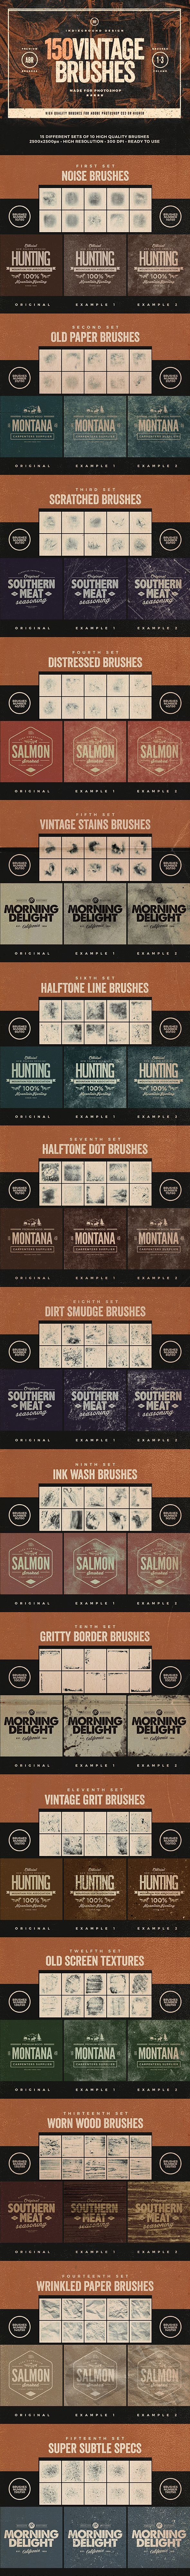 150 Vintage Brushes Bundle - Brushes Photoshop